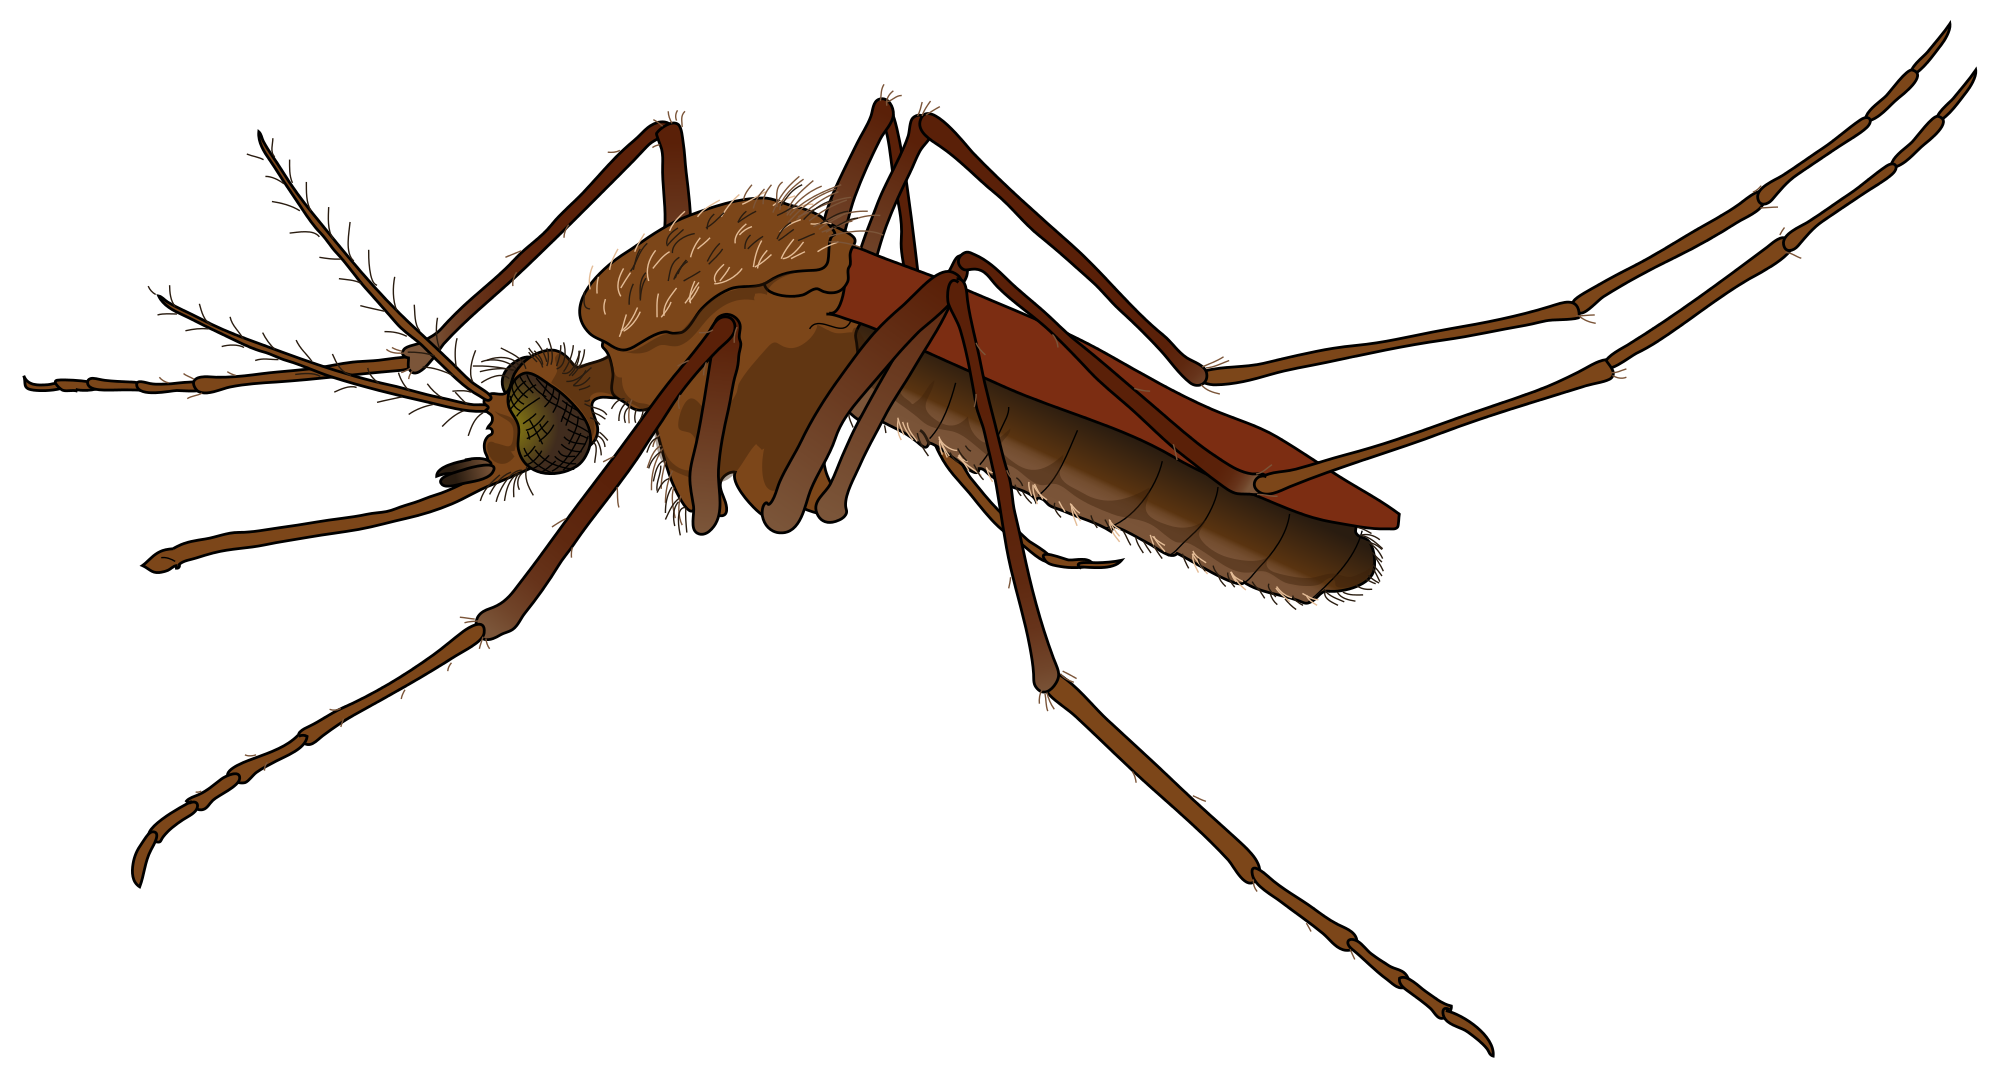 File:Mosquito female.svg - Wikimedia Commons